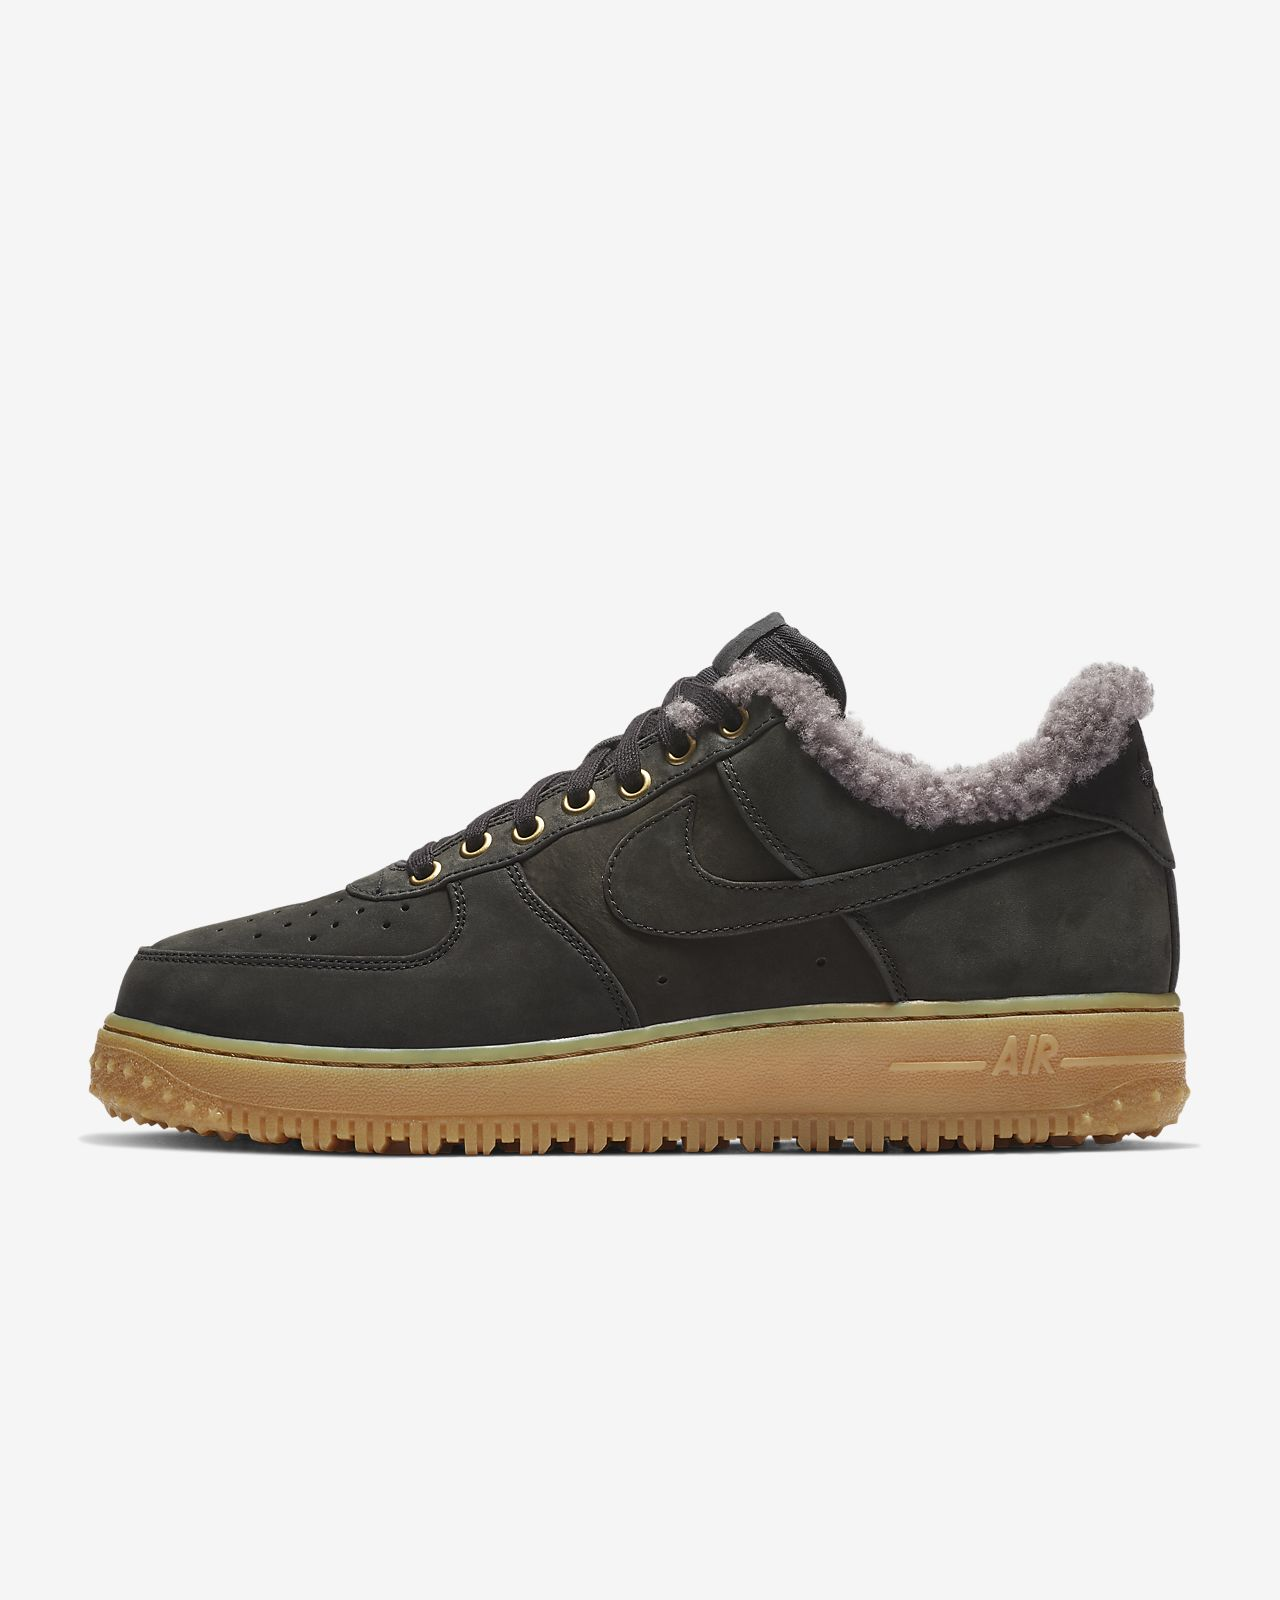 nouvelle arrivee 298fa 2e034 Nike Air Force 1 Premium Winter Men's Shoe